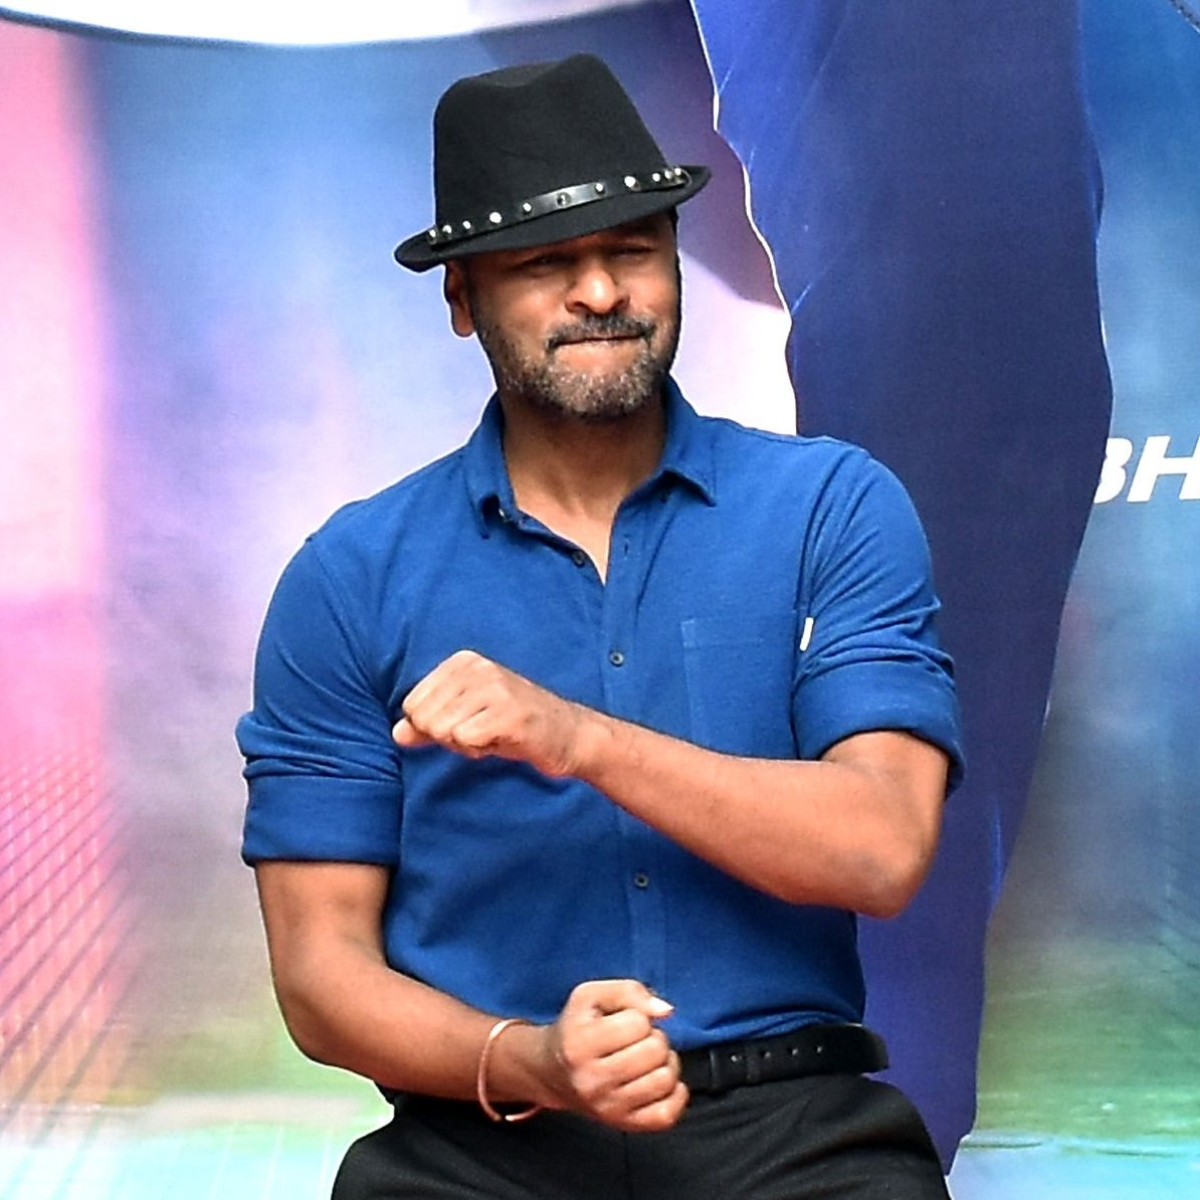 Prabhu Deva to marry his niece, 9 years after divorce from first wife: Report